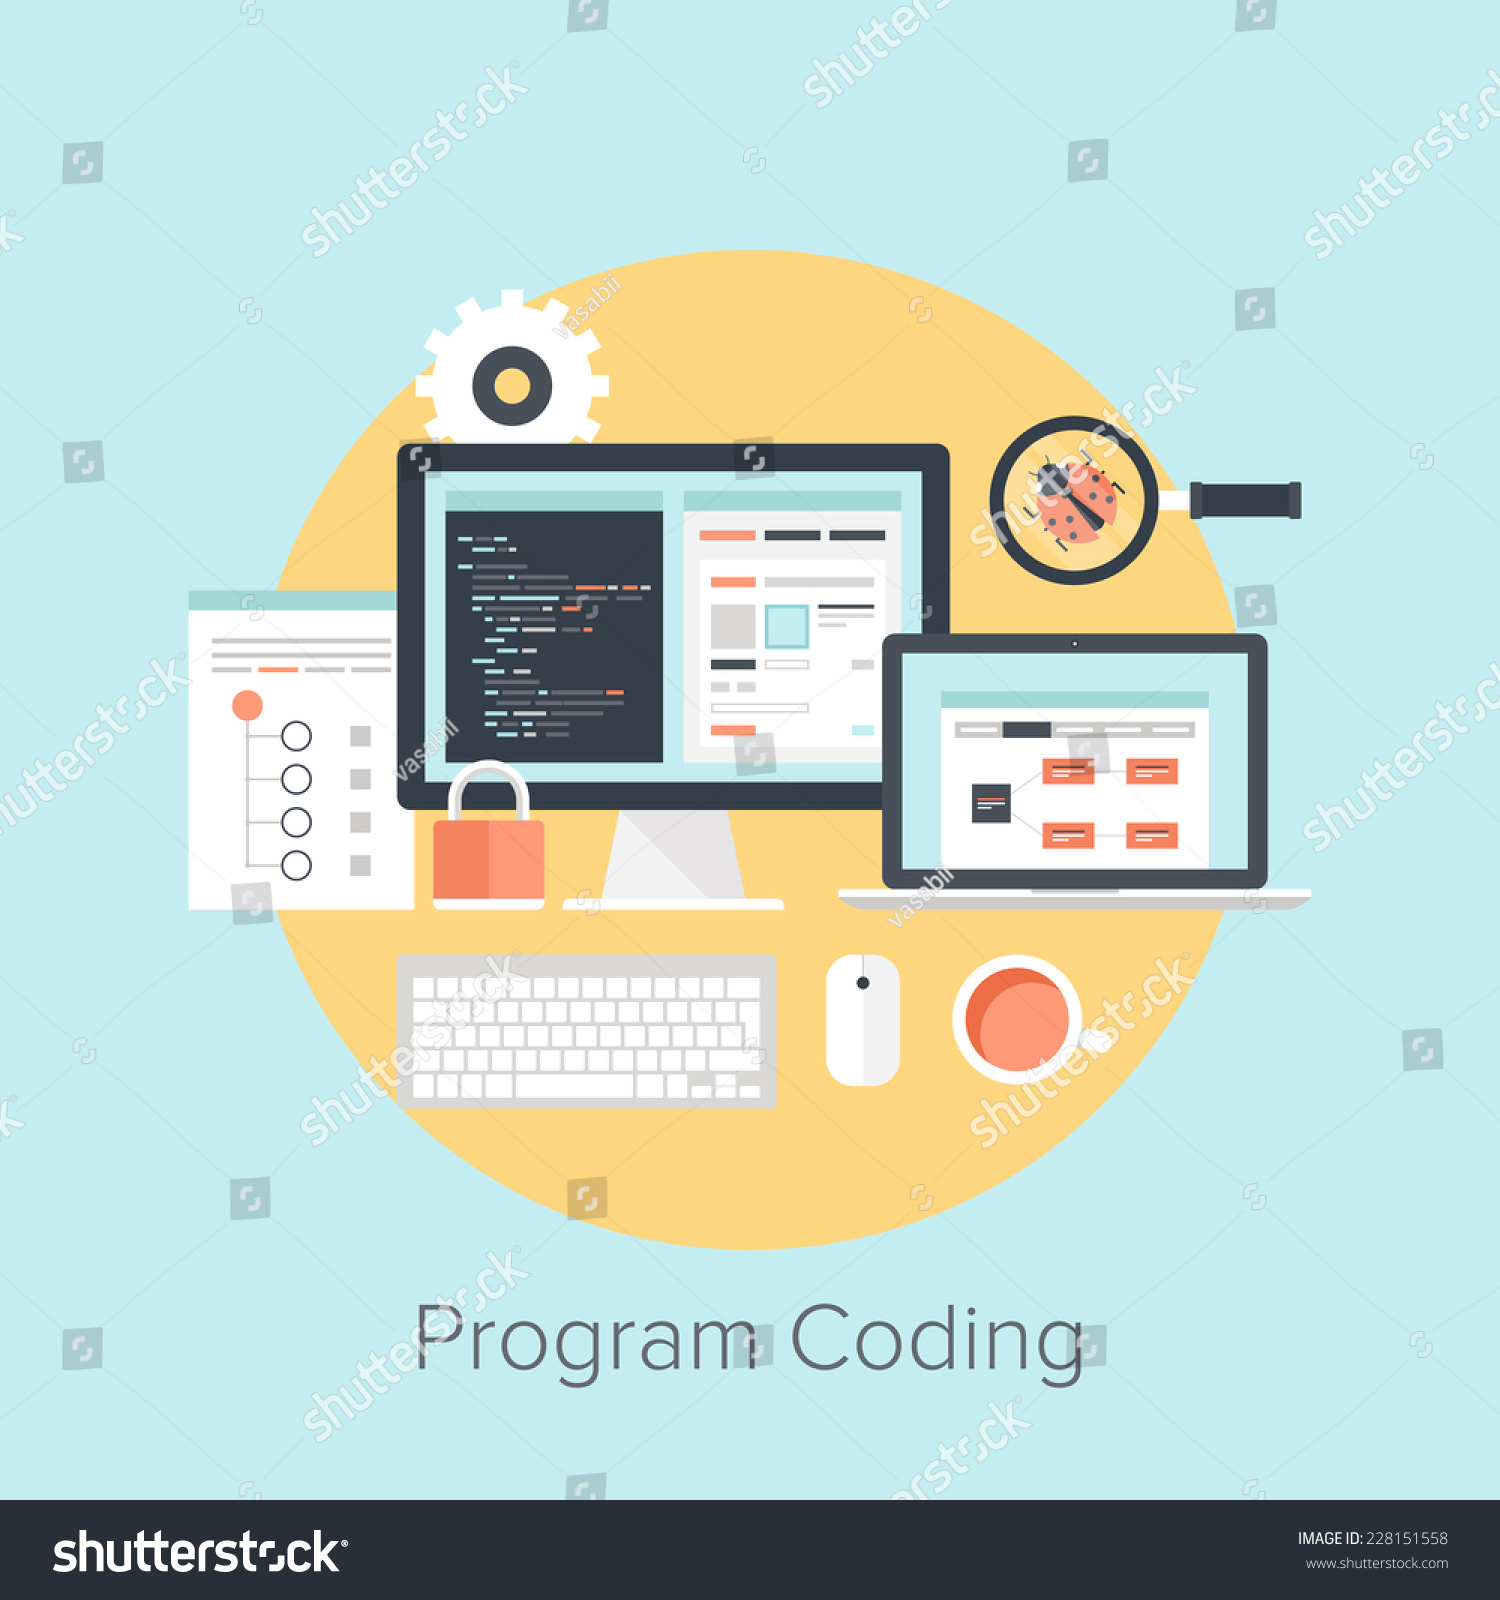 Abstract flat vector illustration of software coding and Vector image software